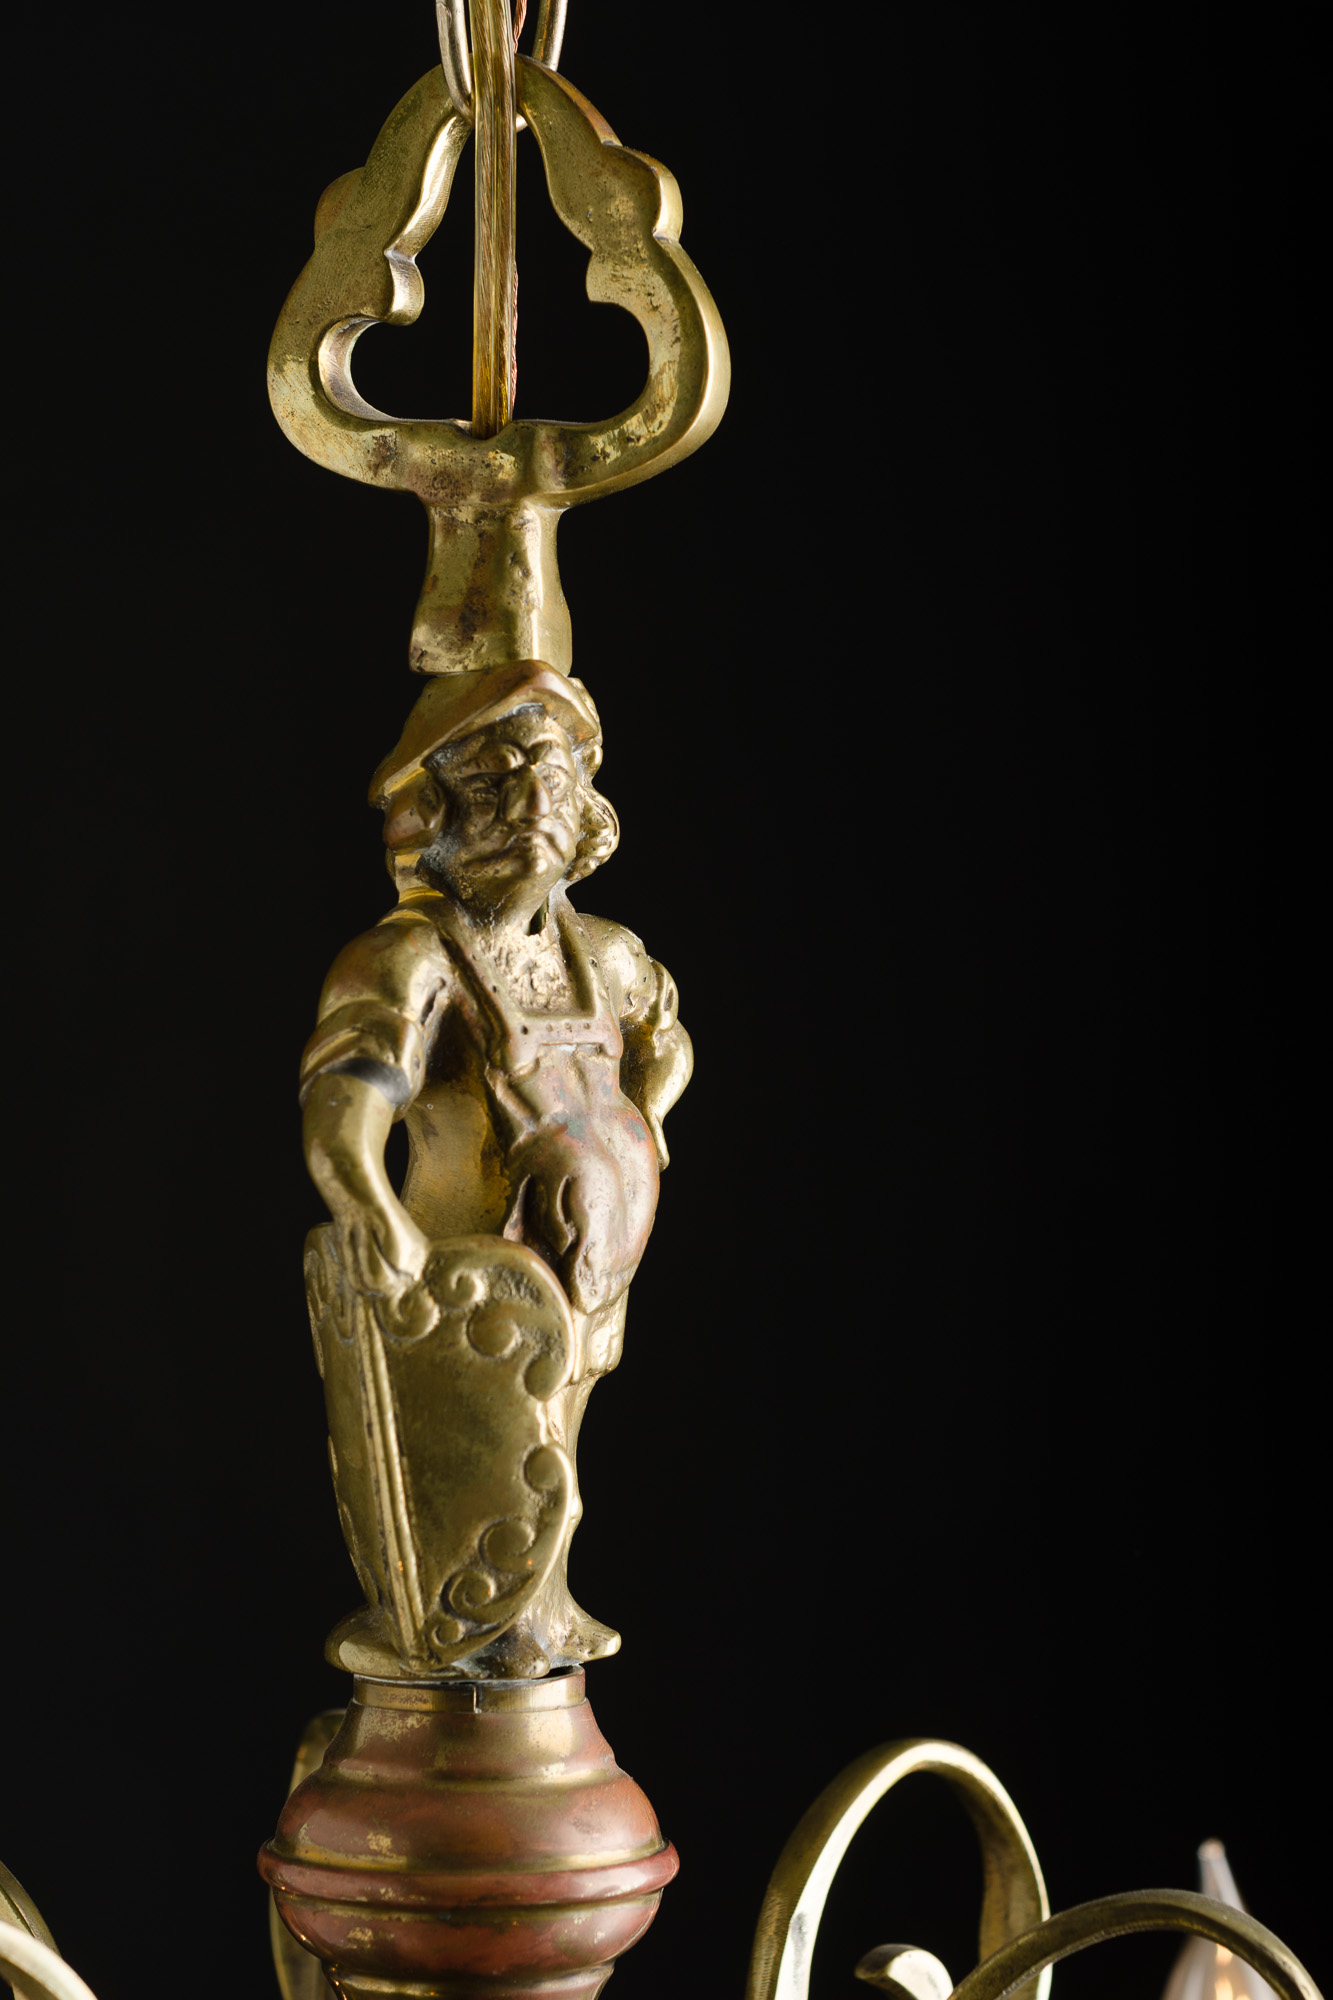 Brass Chandelier With Figure And Hook Ornaments